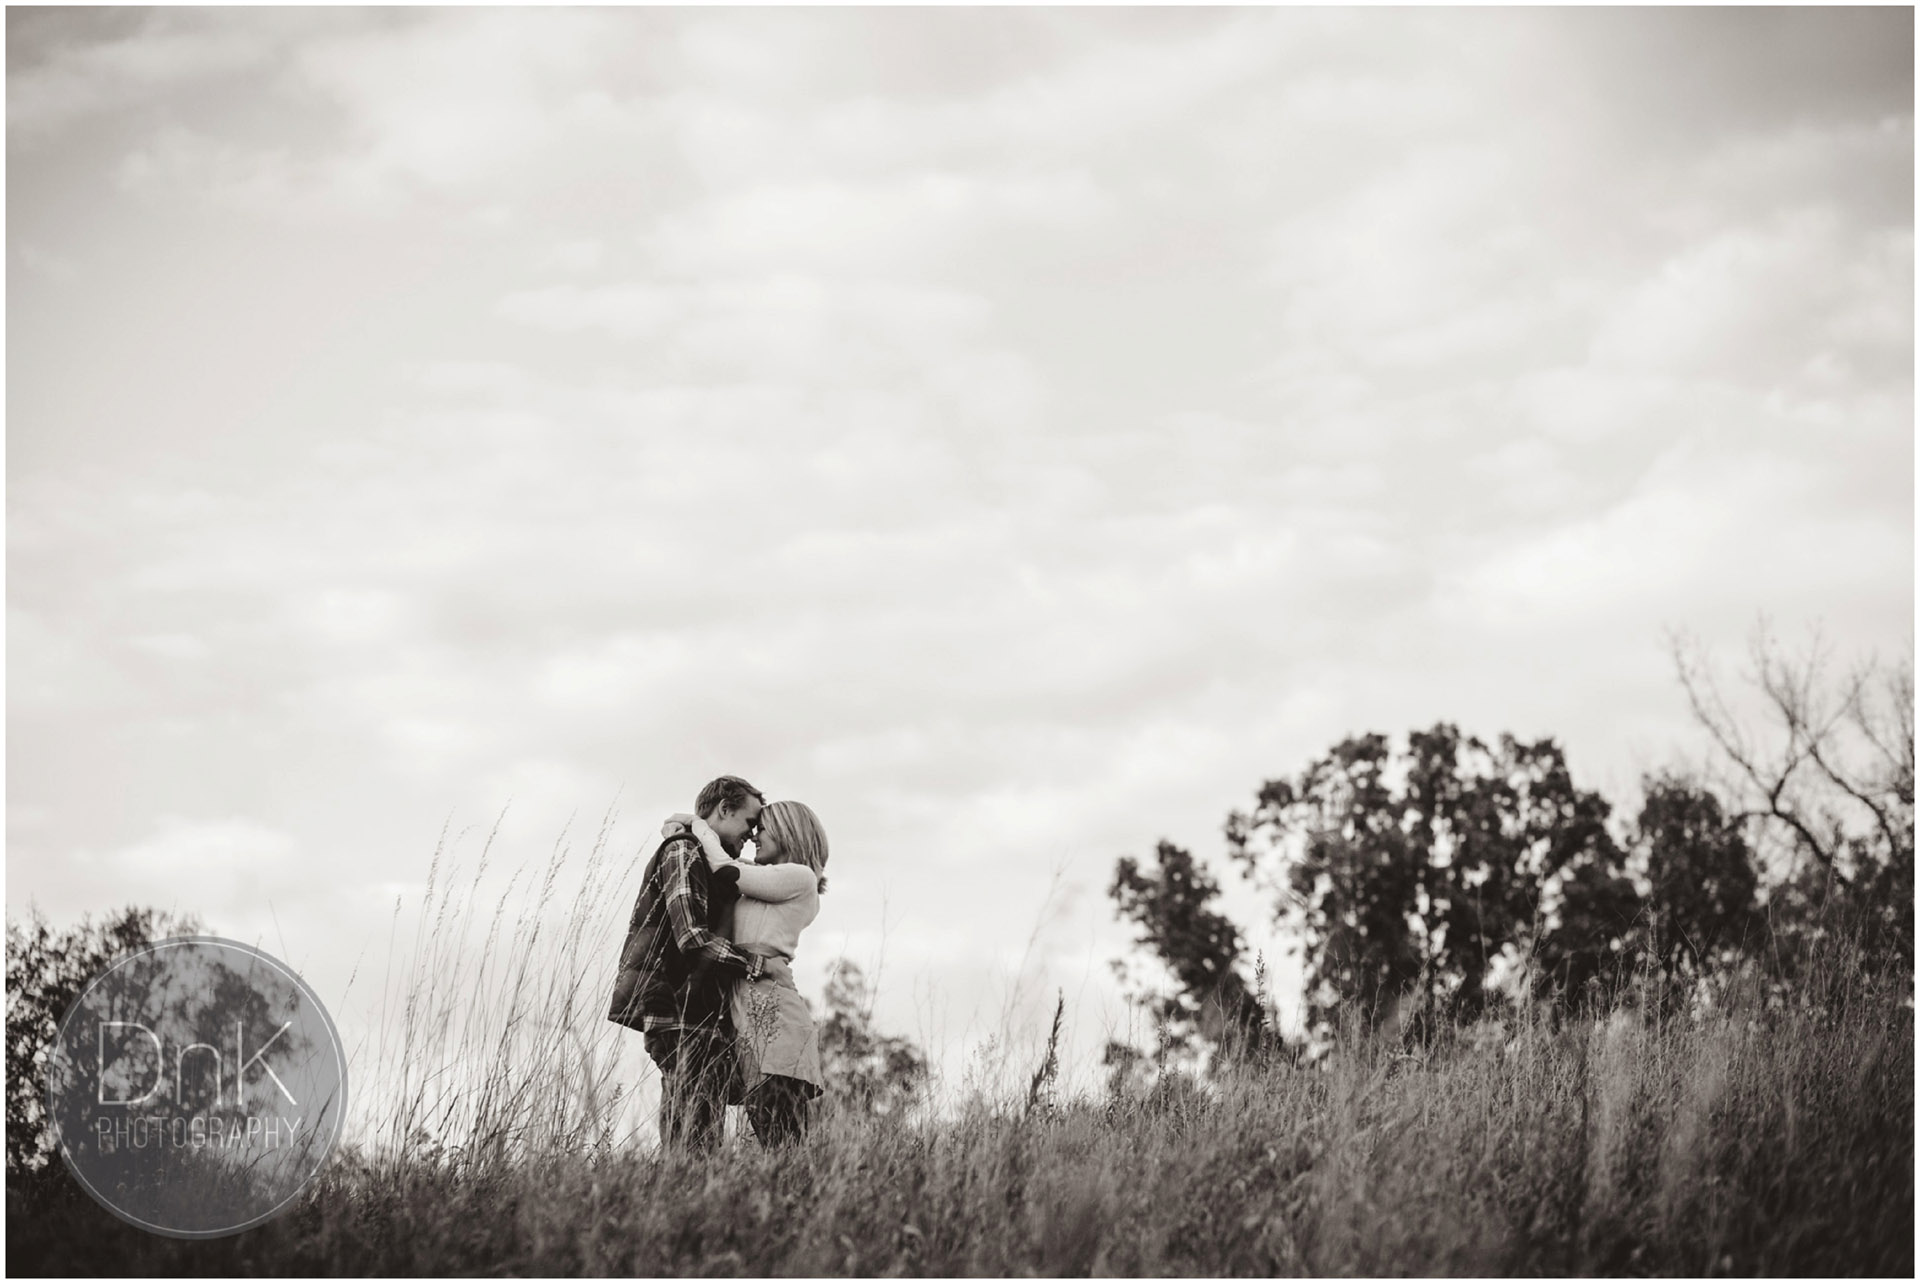 05-Fall-Engagement-Minnesota-DnK-Photography